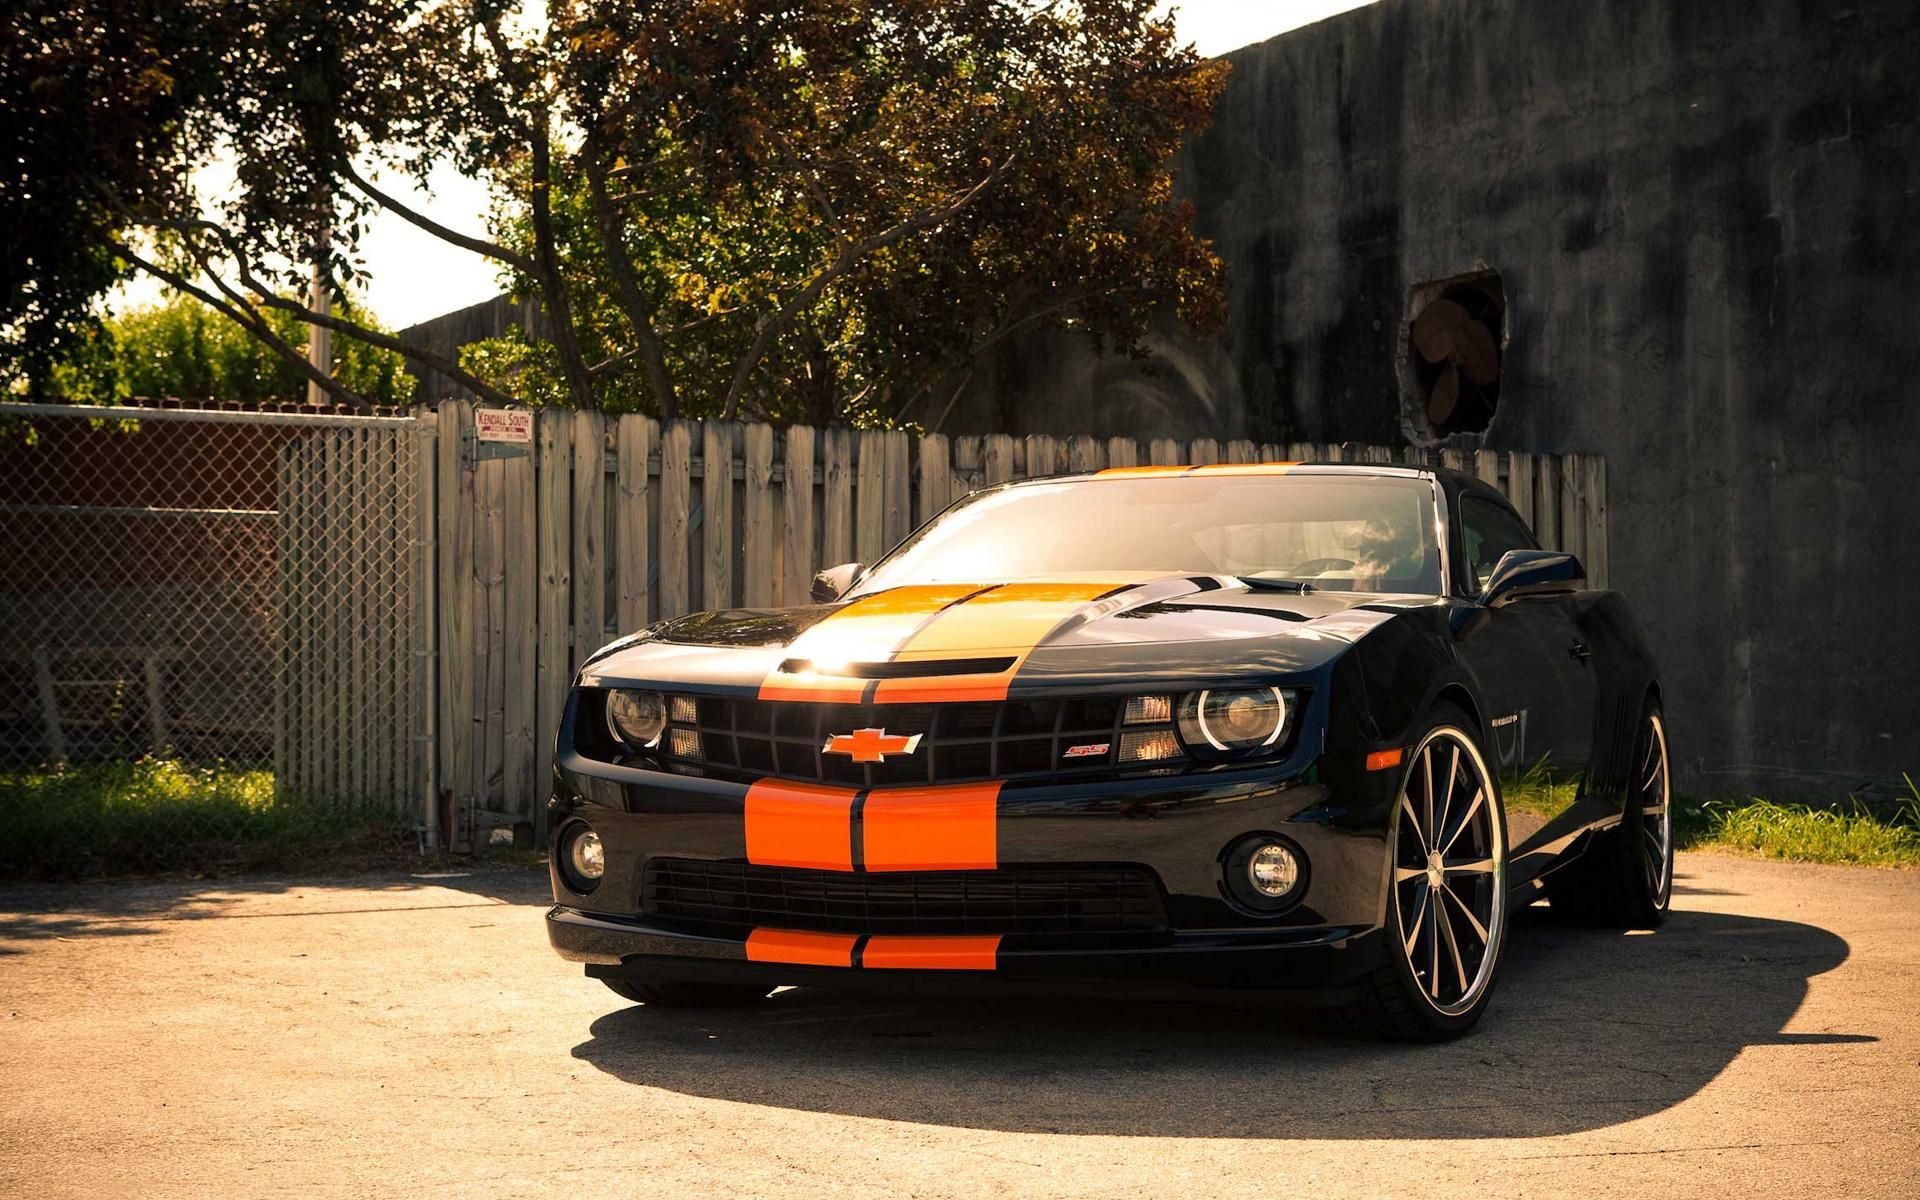 Chevrolet camaro ss car wallpaper hd http imashon com w